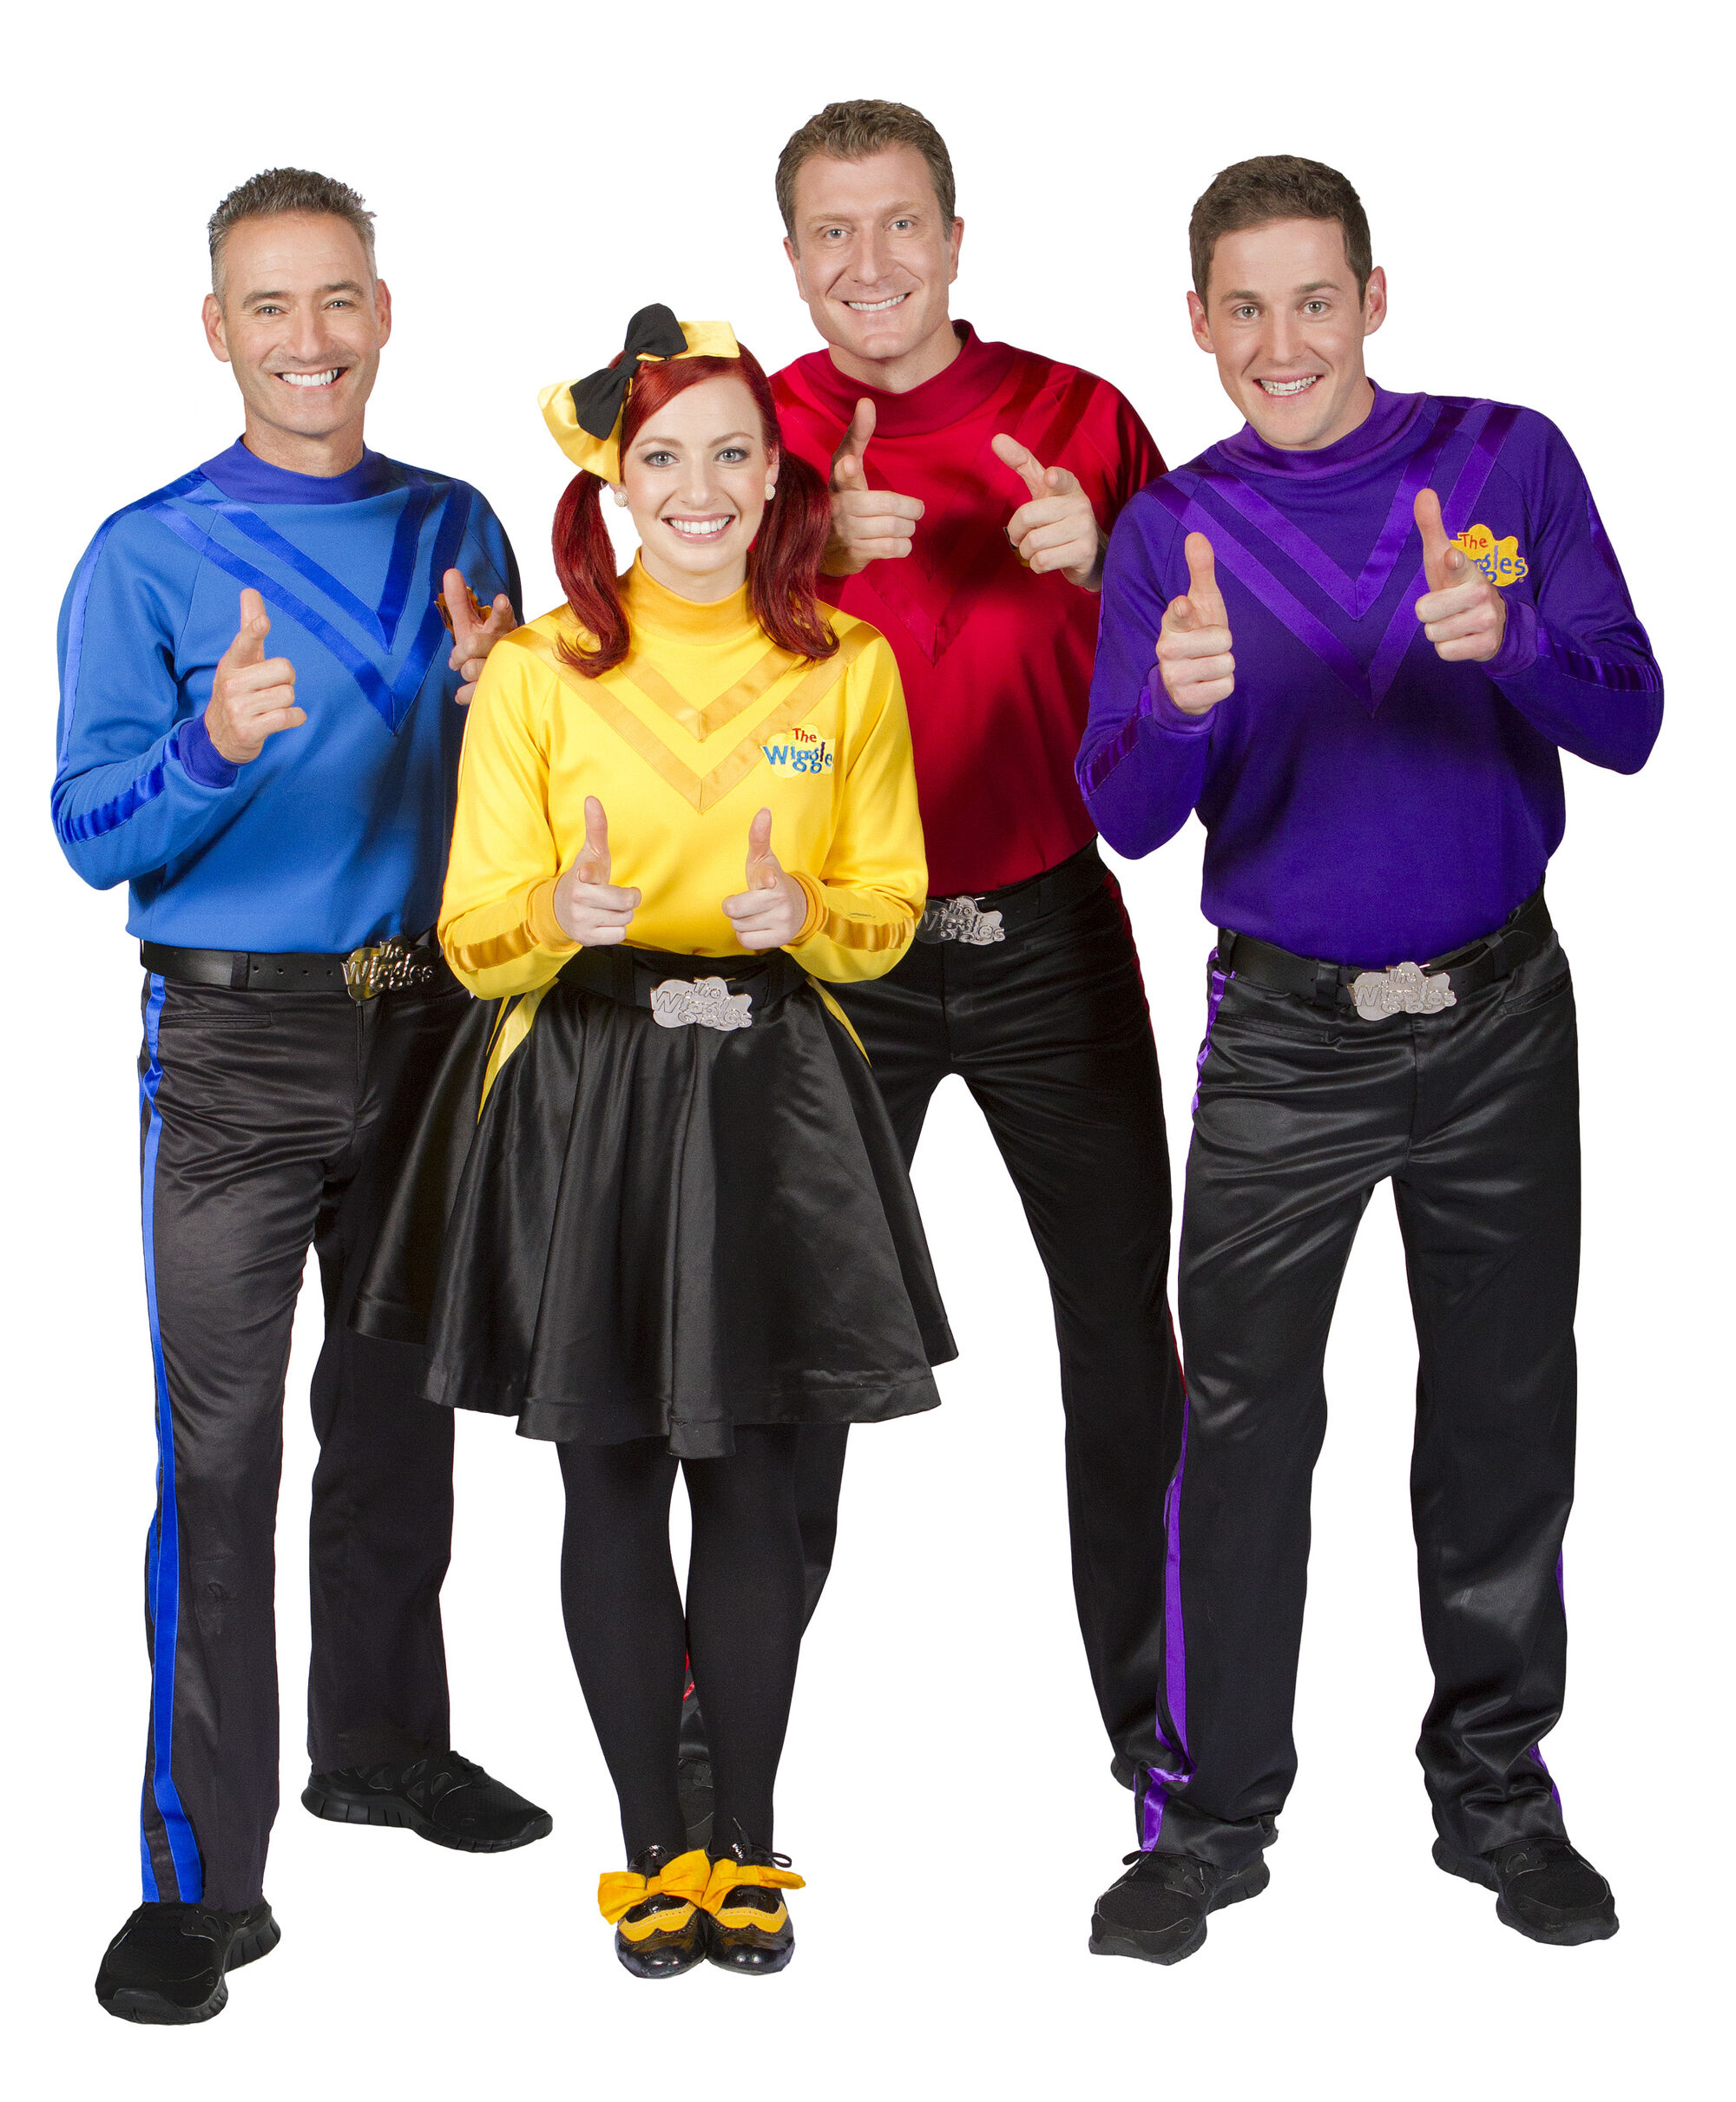 History Of The Wiggles Wigglepedia Fandom Powered By Wikia